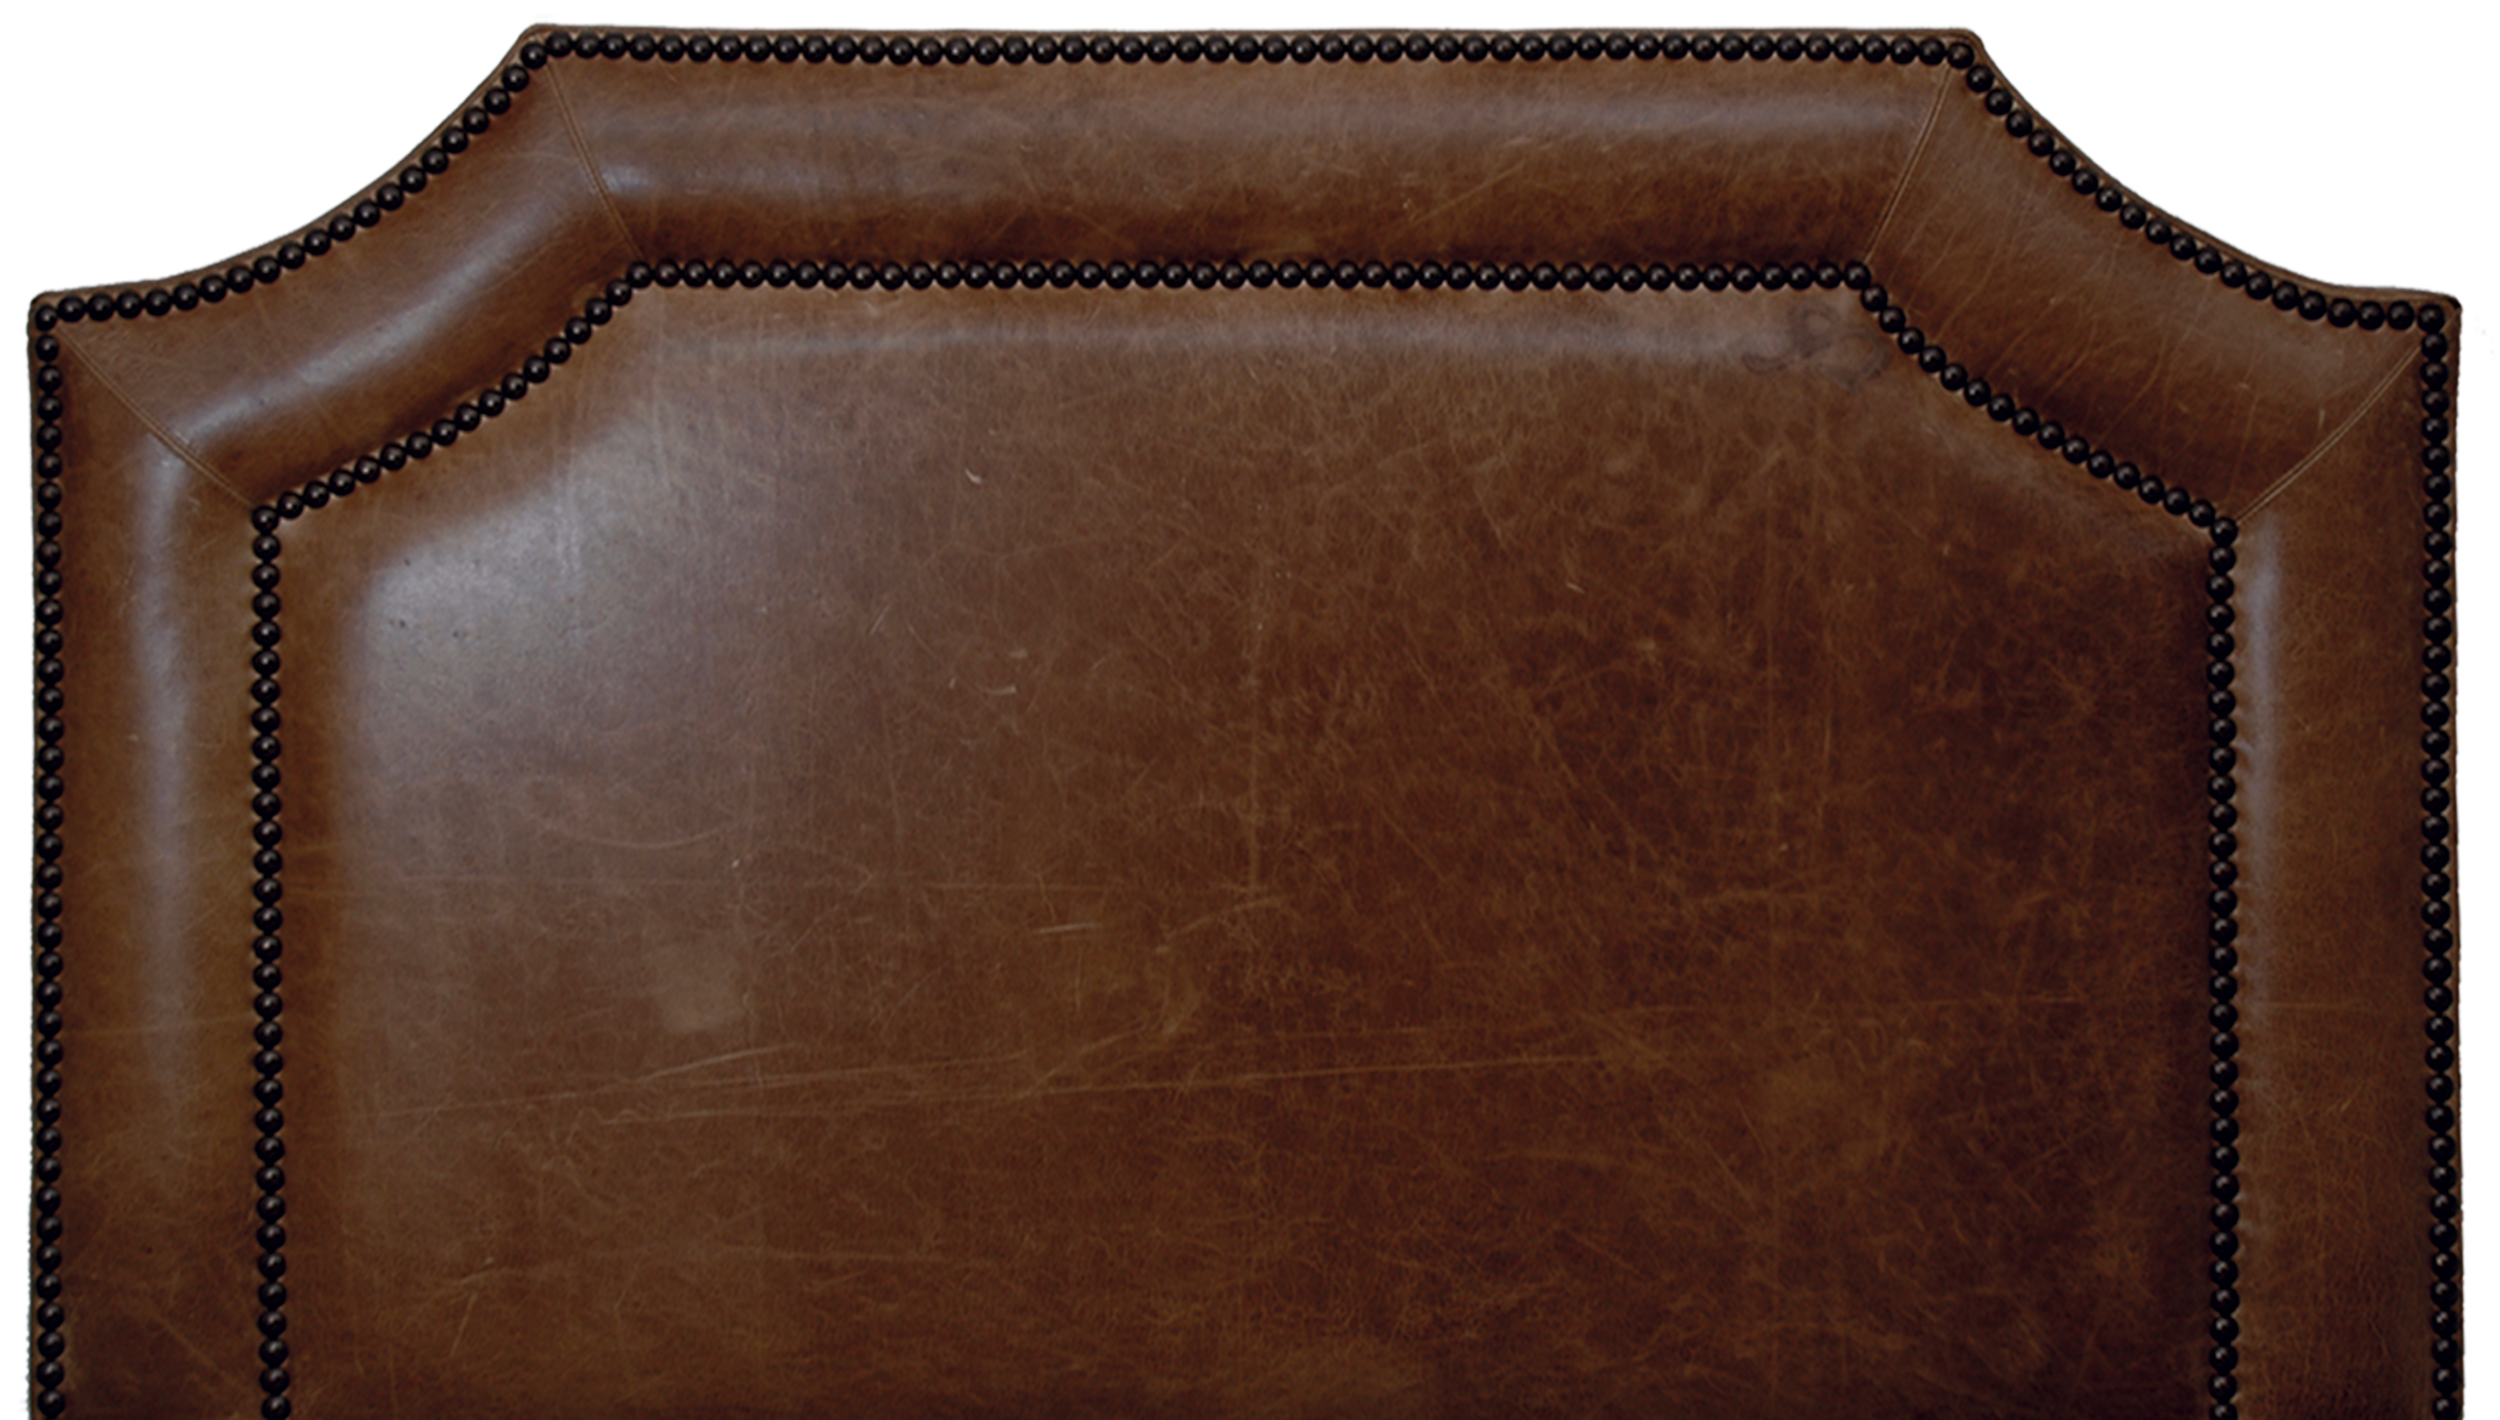 Outlaw Headboard - Shown in Butte leather with antique brown nail heads